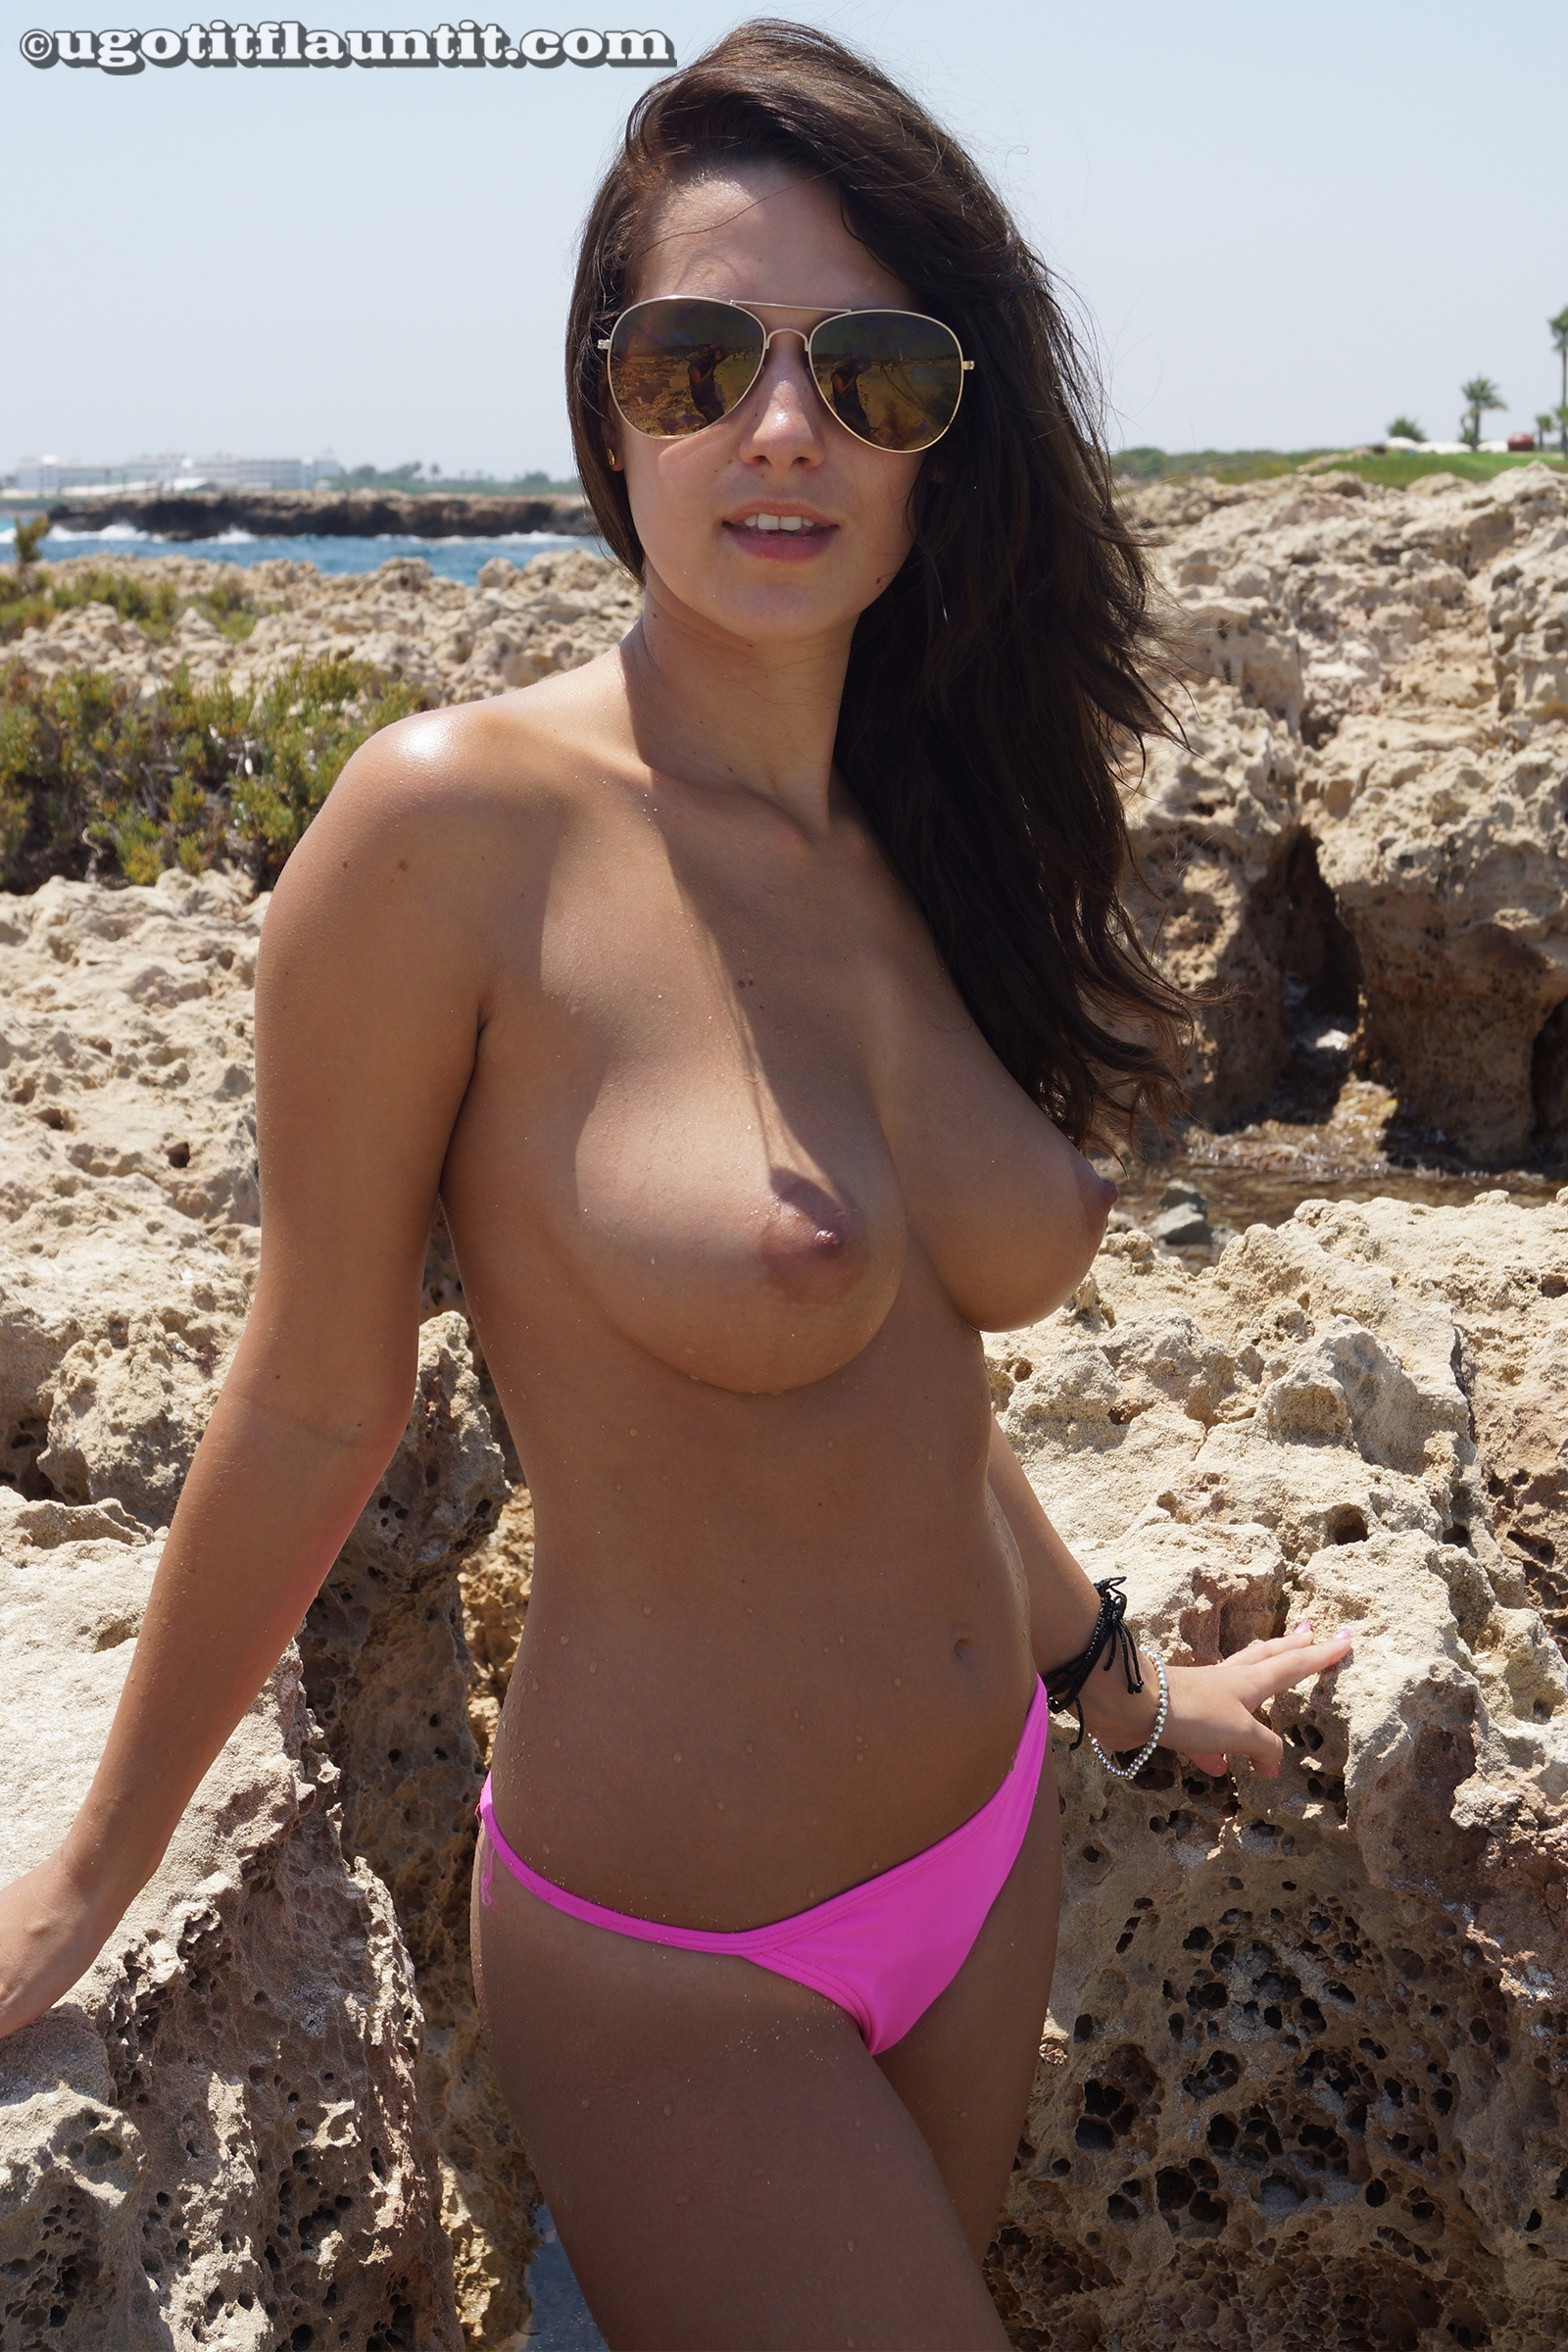 tits parade on the public beach with ugotitflauntit beauty anna #1